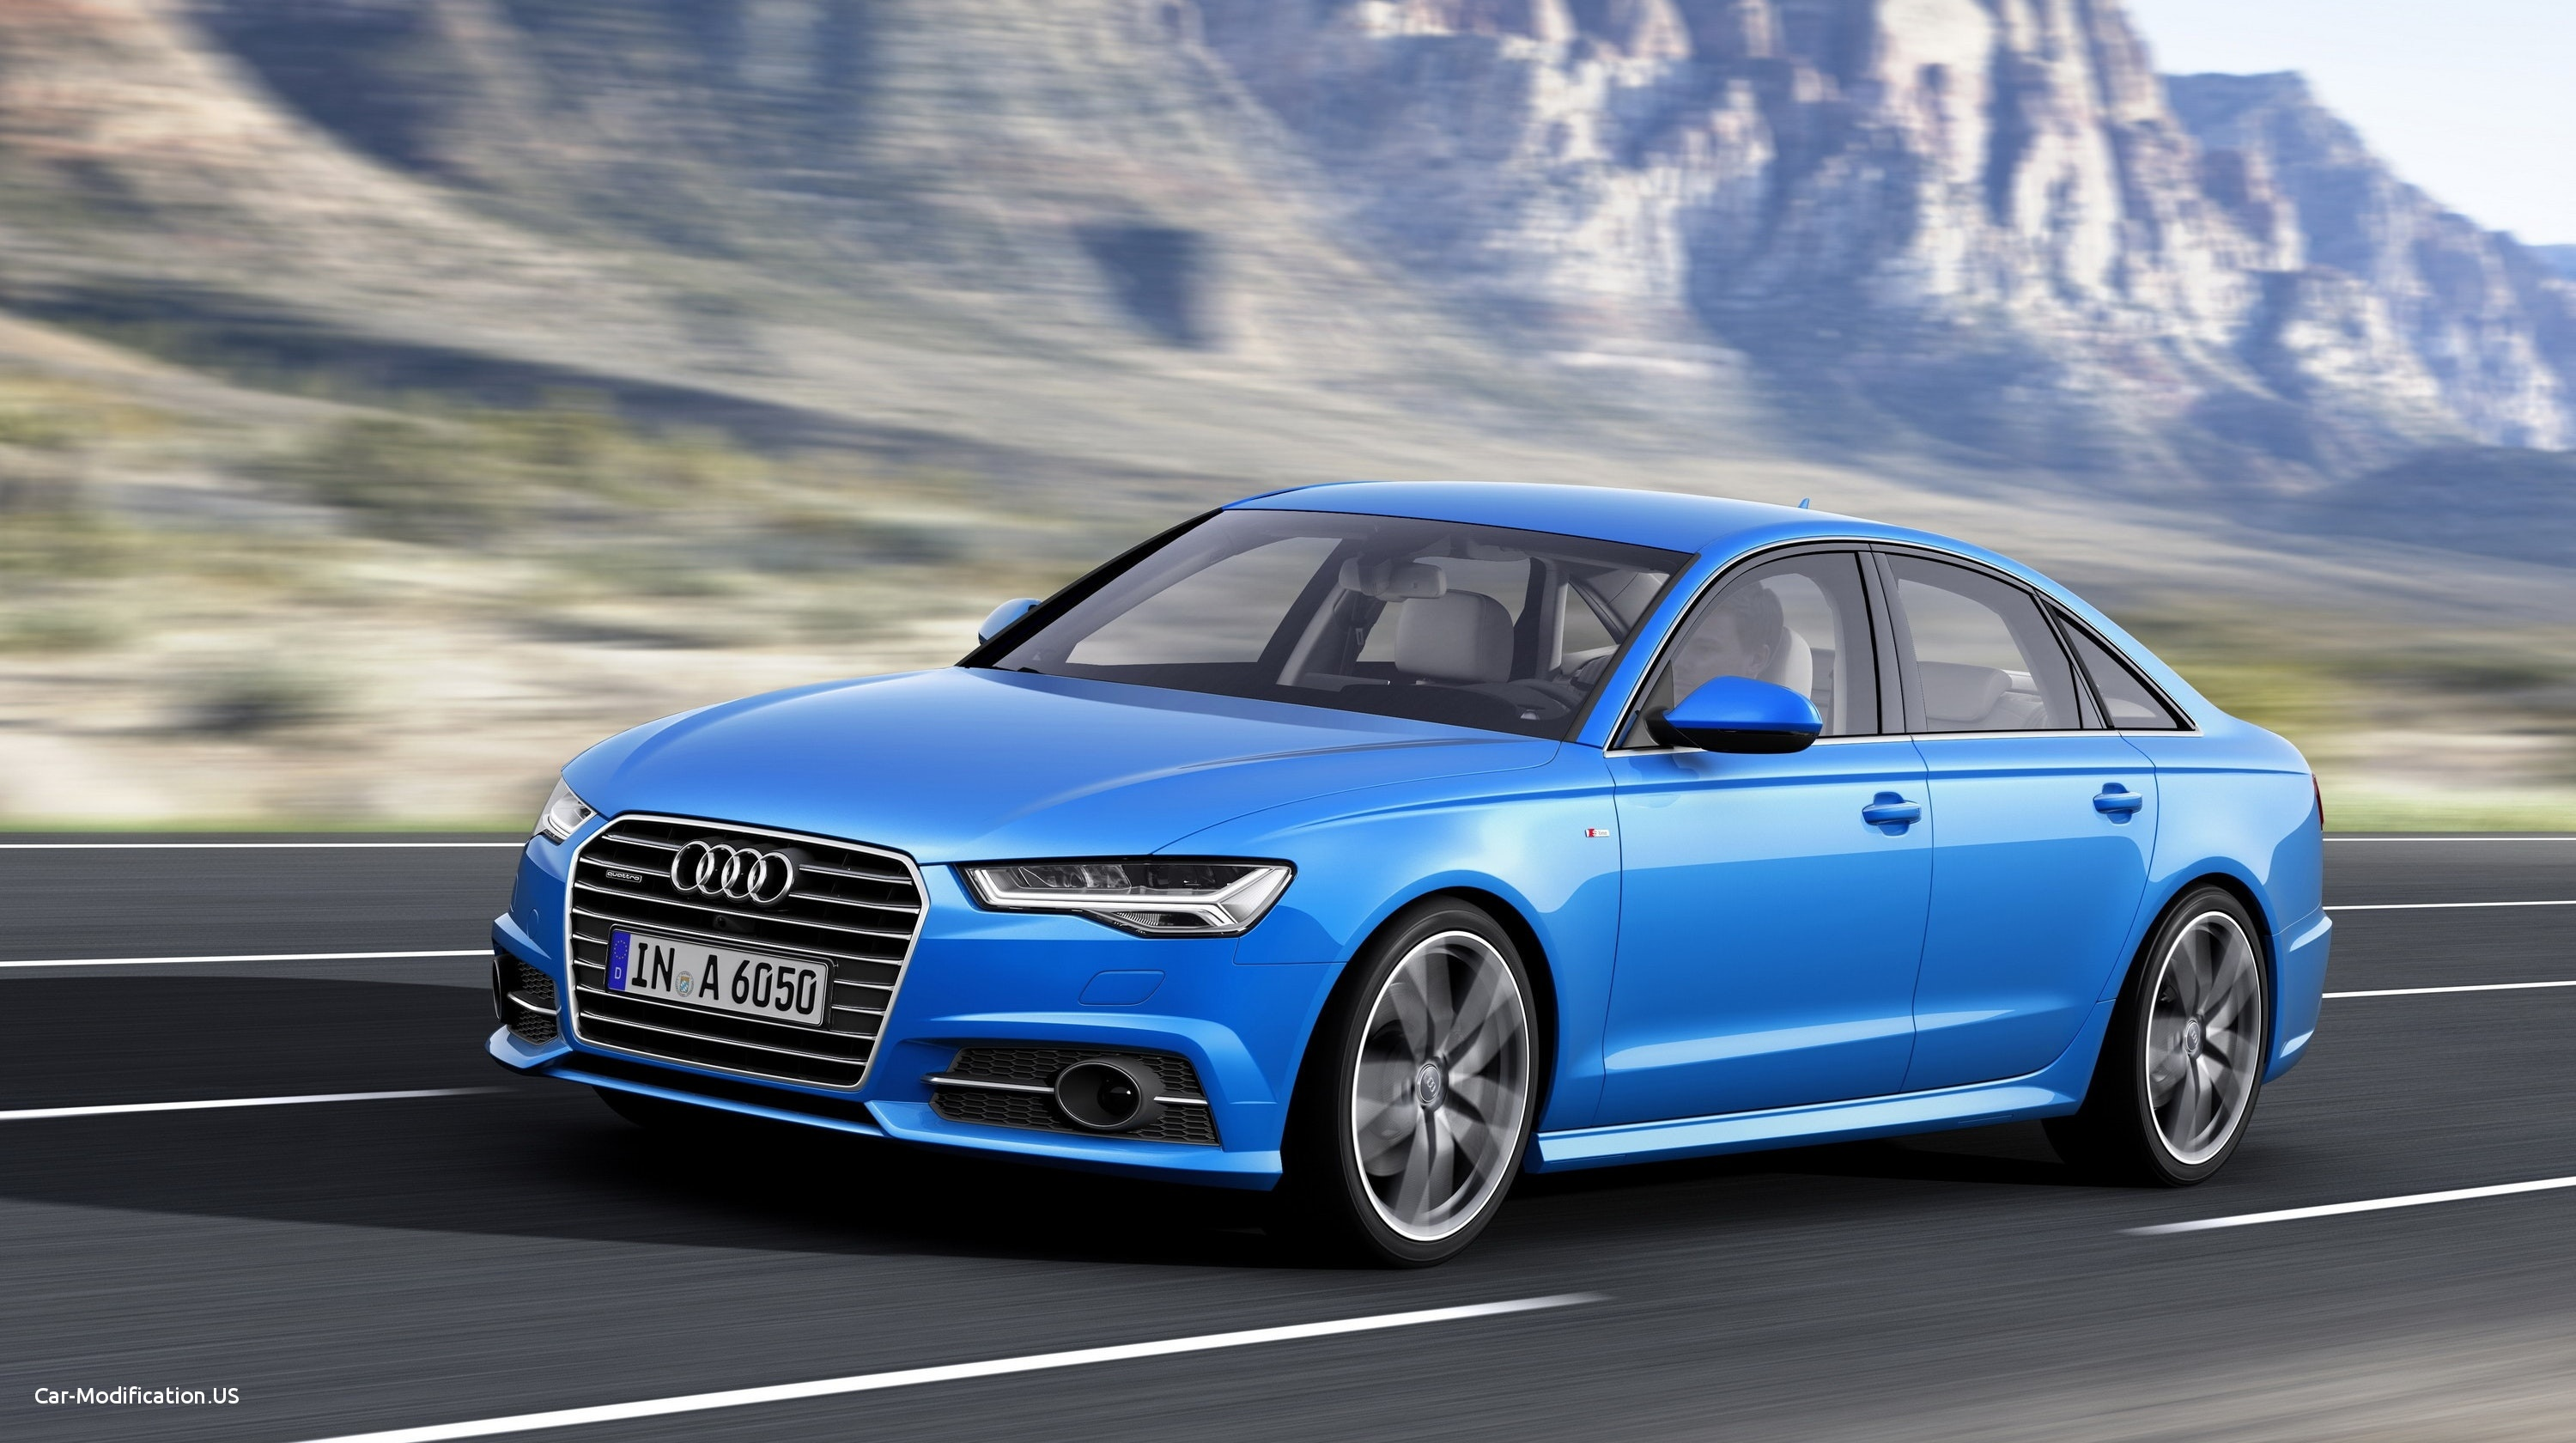 Modified Audi A7 Luxury Audi A6 2019 Model Neues Neuer Audi A7 Lovely Audi A6 2019 First-2589 Of Unique Modified Audi A7-2589